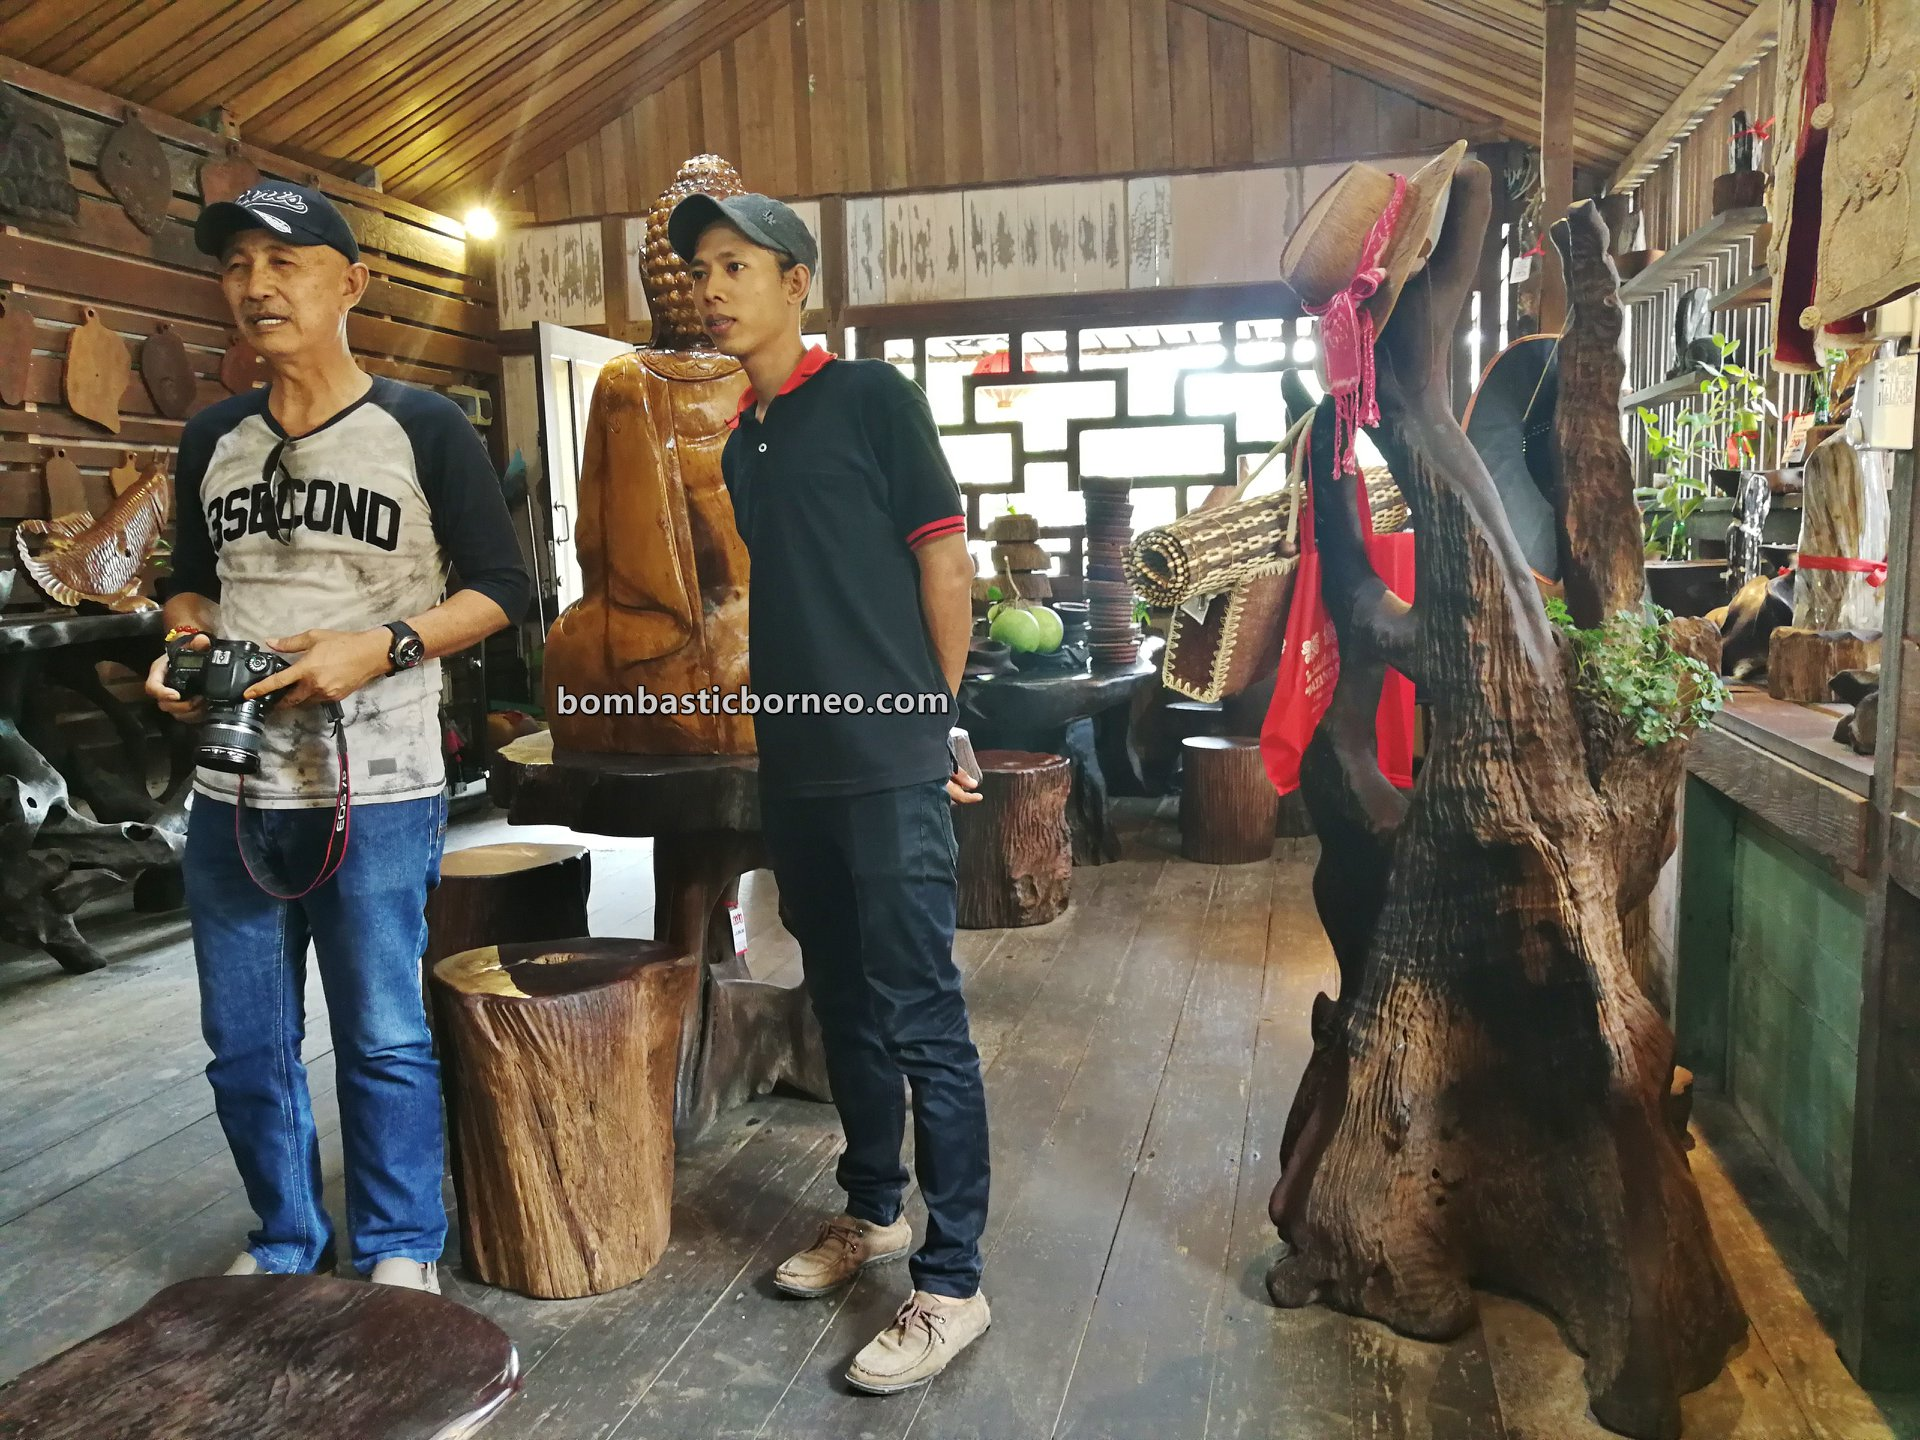 destination, hard wood, kayu belian, kayu ulin, Indonesia, Kalimantan Barat, kerajinan kayu, nature, Tourism, travel guide, wood sculptures, wood crafts, 婆罗洲木雕旅游景点, 印尼西加里曼丹, 山口洋木制家具